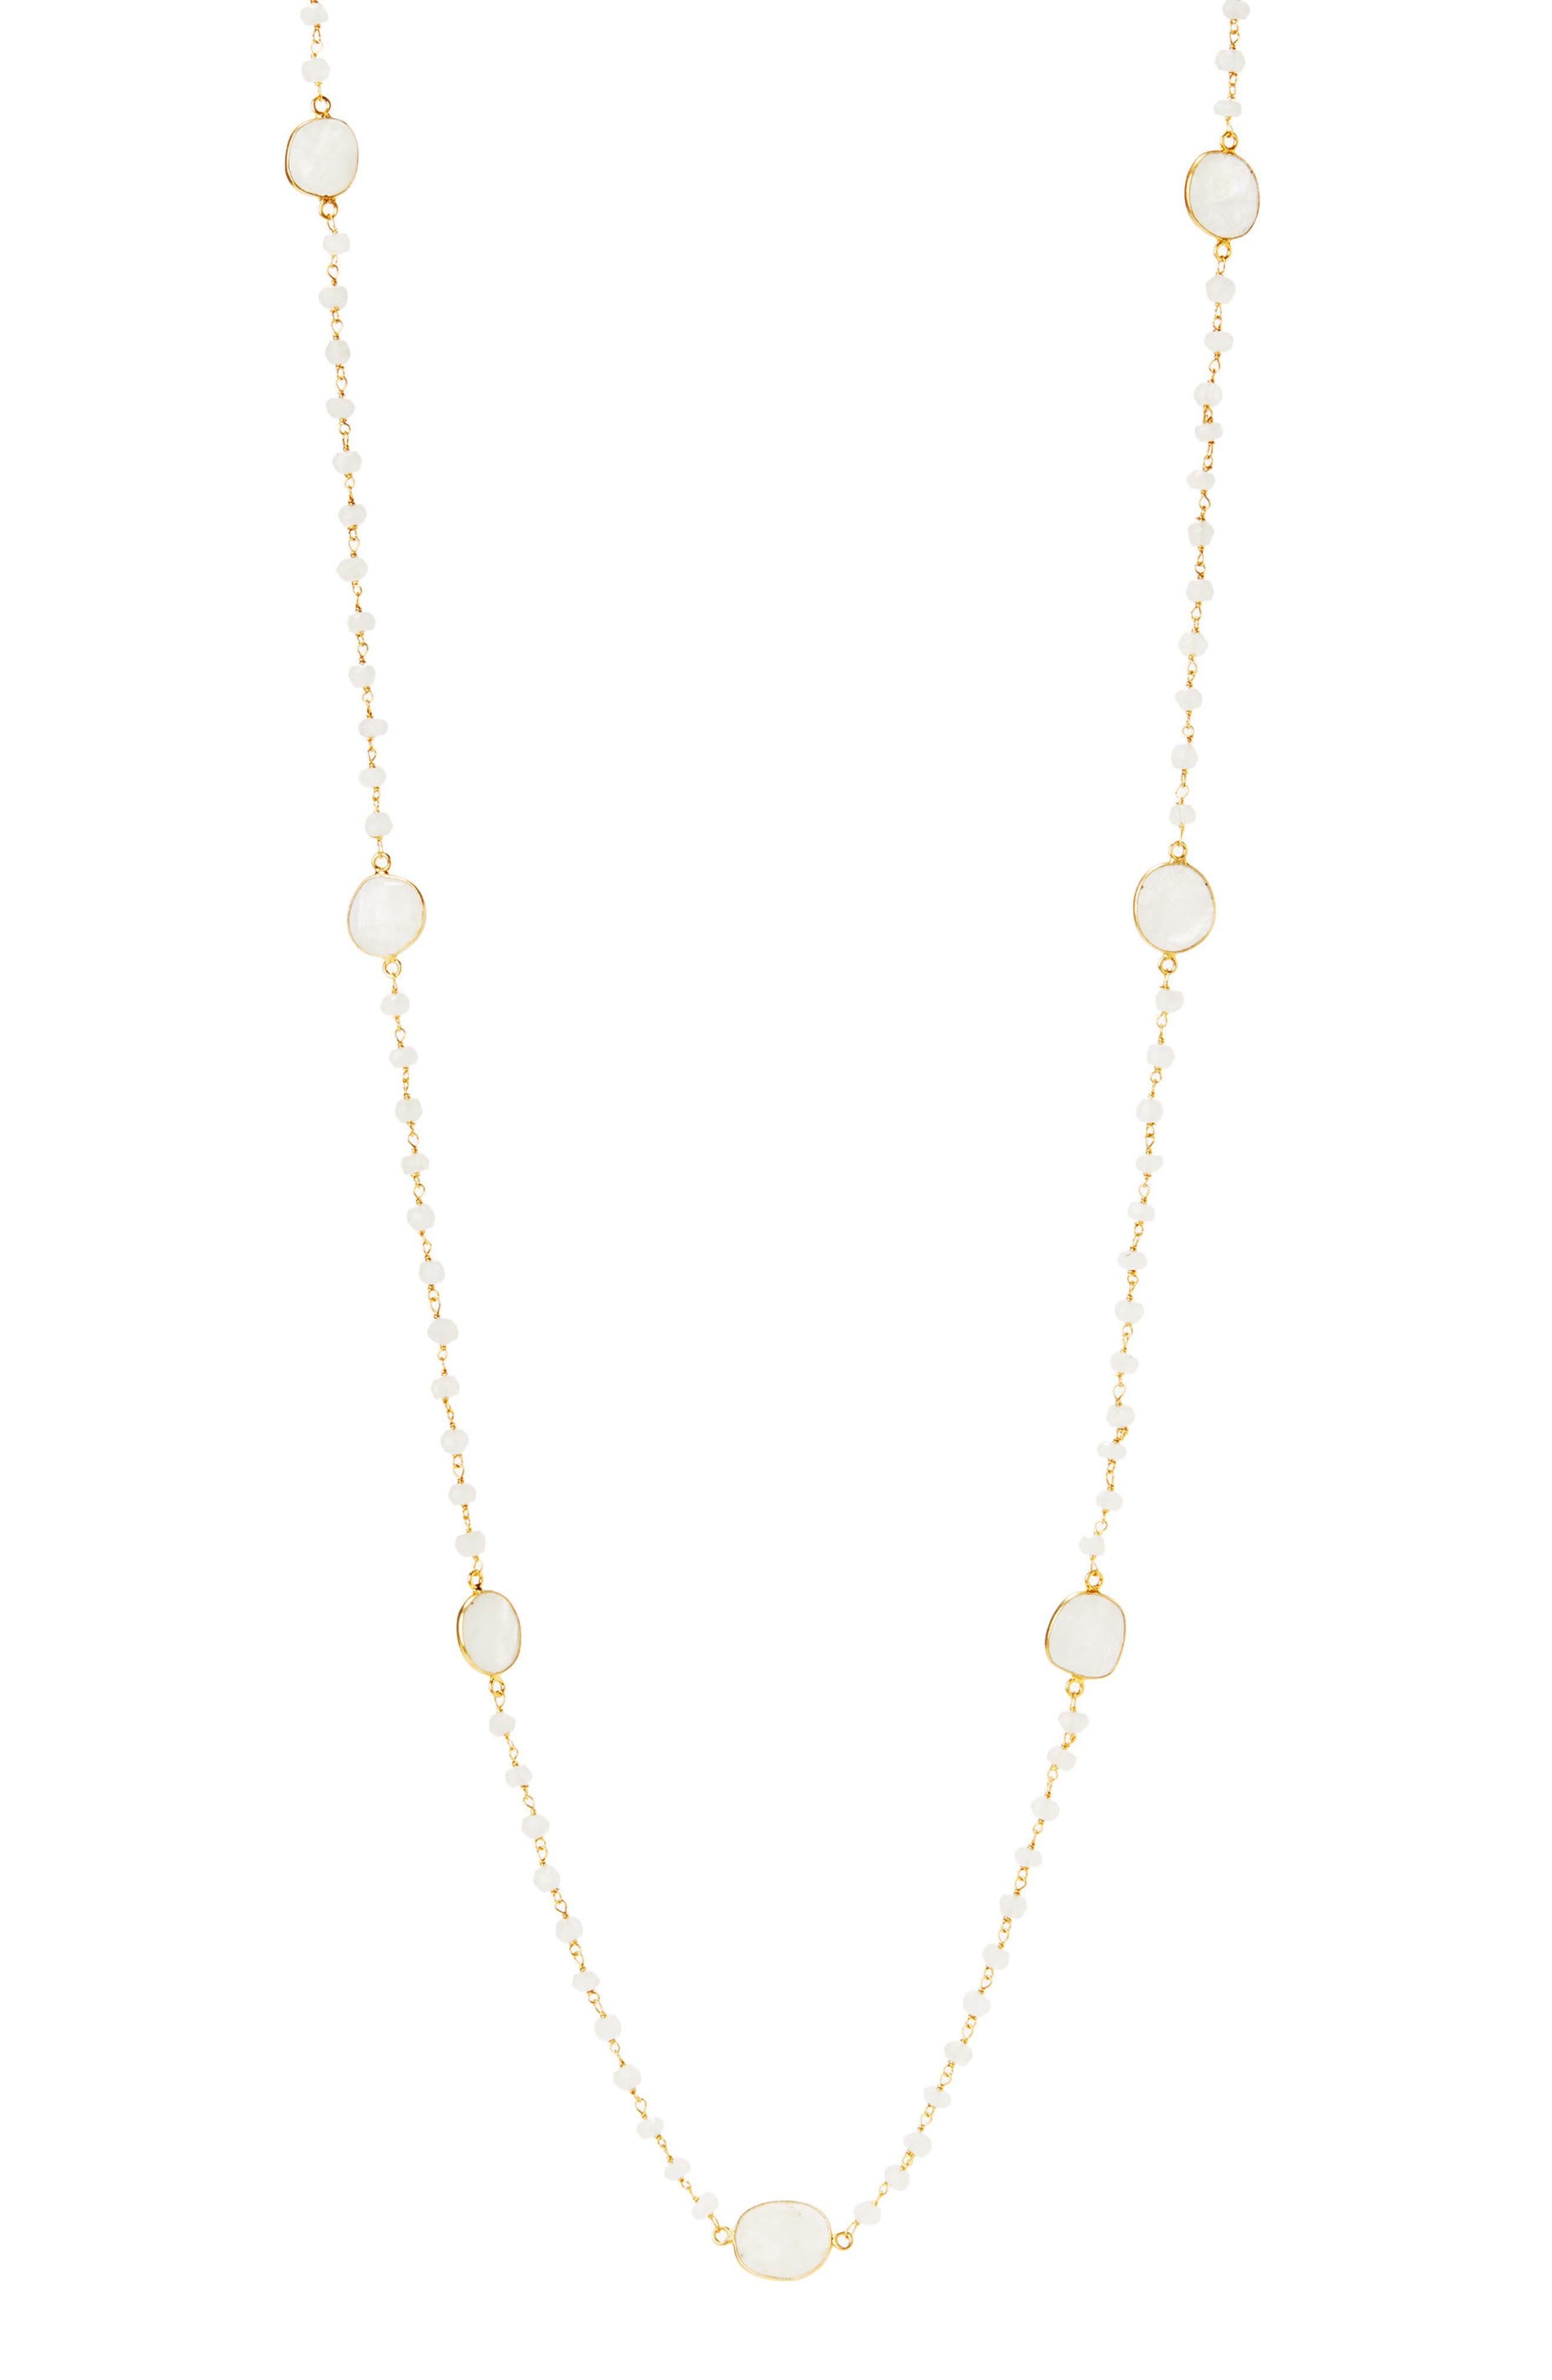 Neivs Station Necklace,                         Main,                         color, 104